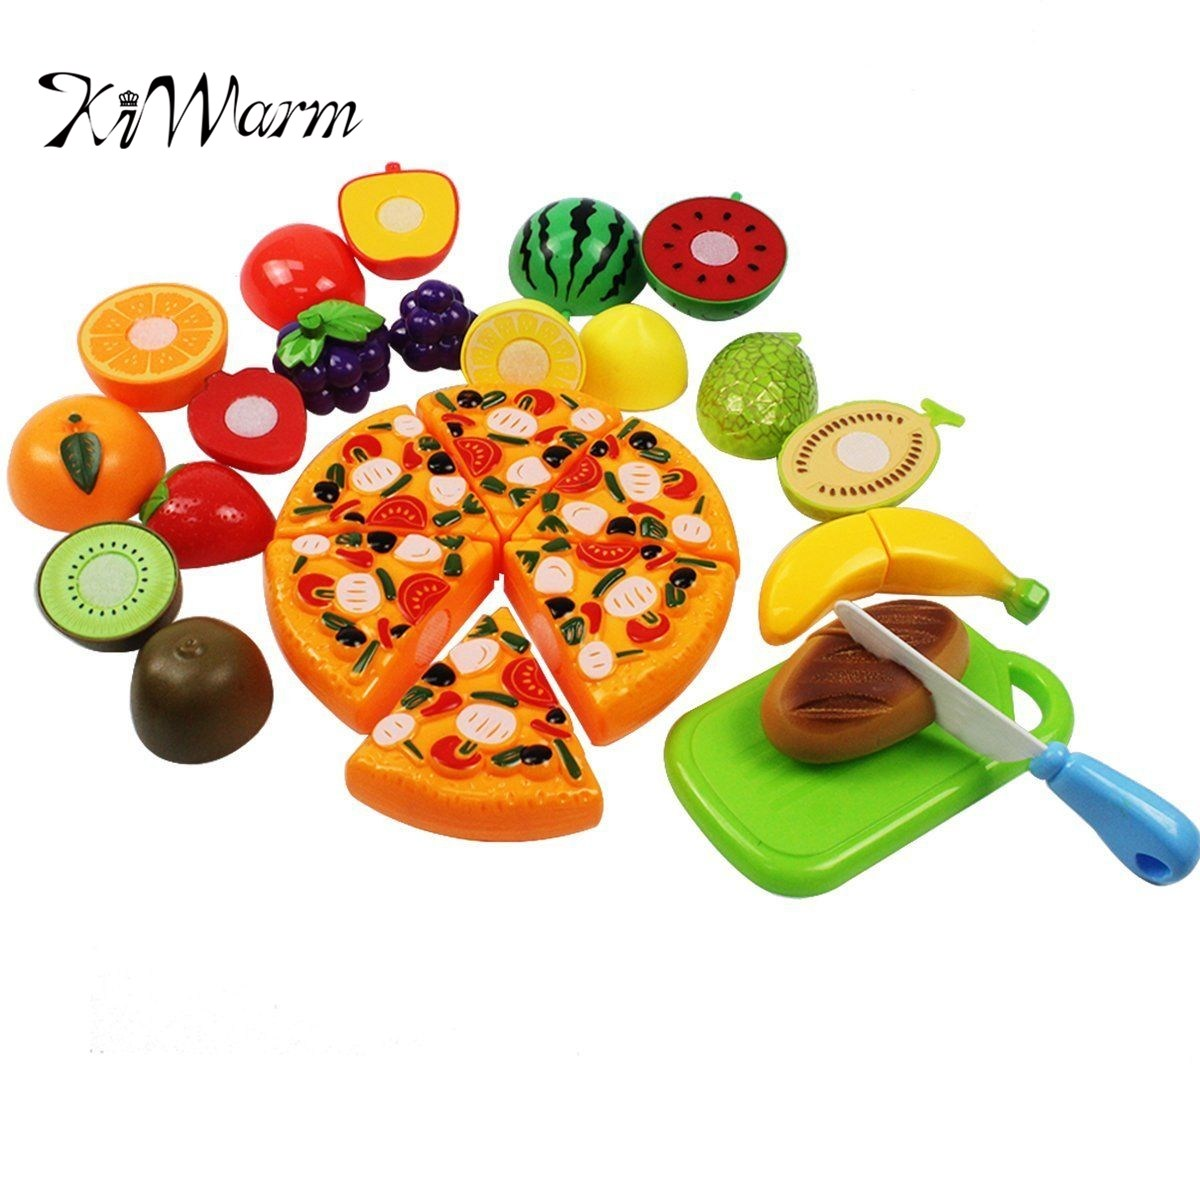 KiWarm 18pcs Fruit Vegetable Kitchen Pretend Food Cutting Toys Set Role Play Kids For Home Ornament Crafts